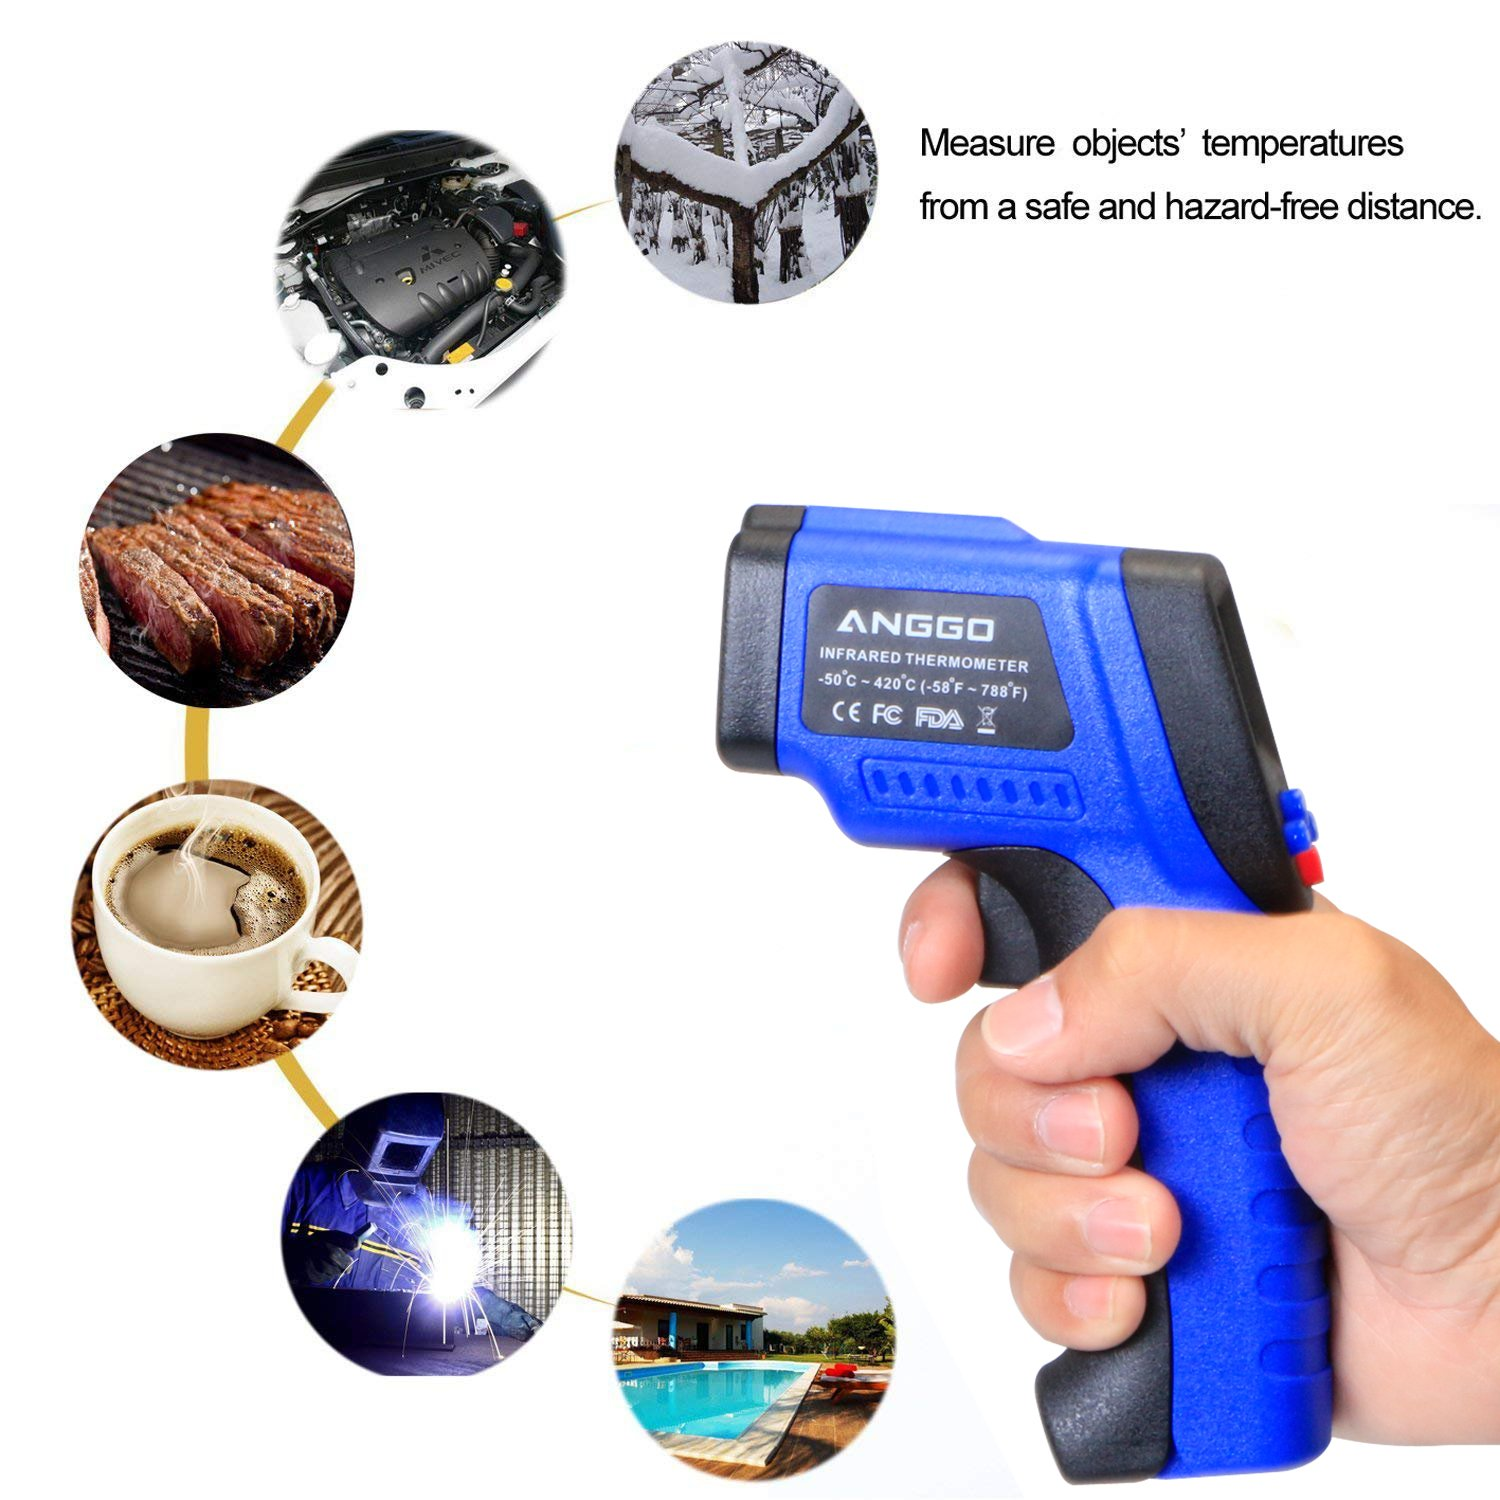 ANGGO Non-contact Digital Infrared Thermometer Temperature Gun with EMS Adjustable (-58 °F to 788°F) by ANGGO (Image #6)